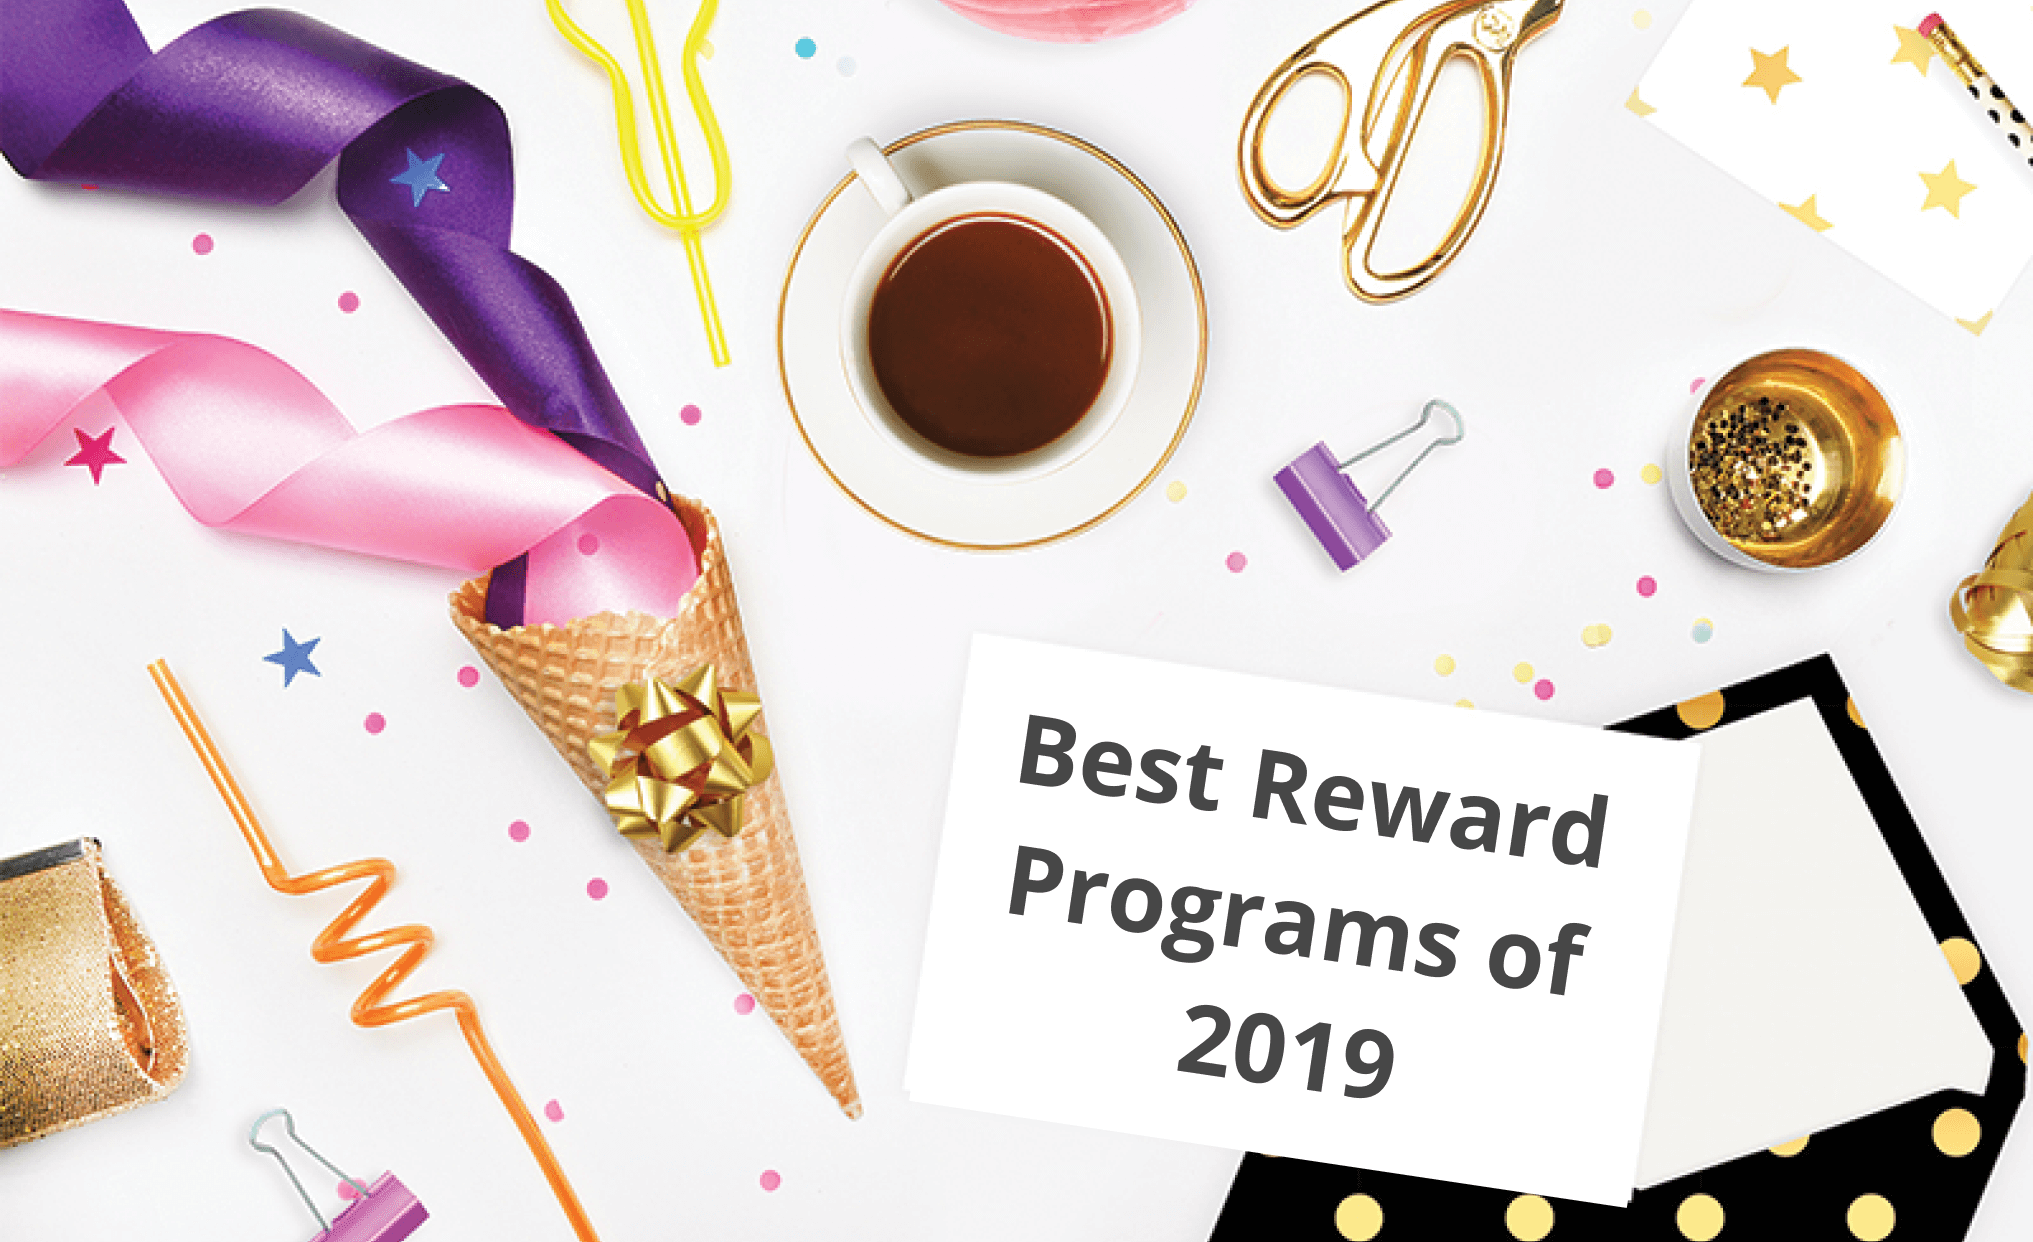 Top 10 Customer Loyalty Programs of 2019